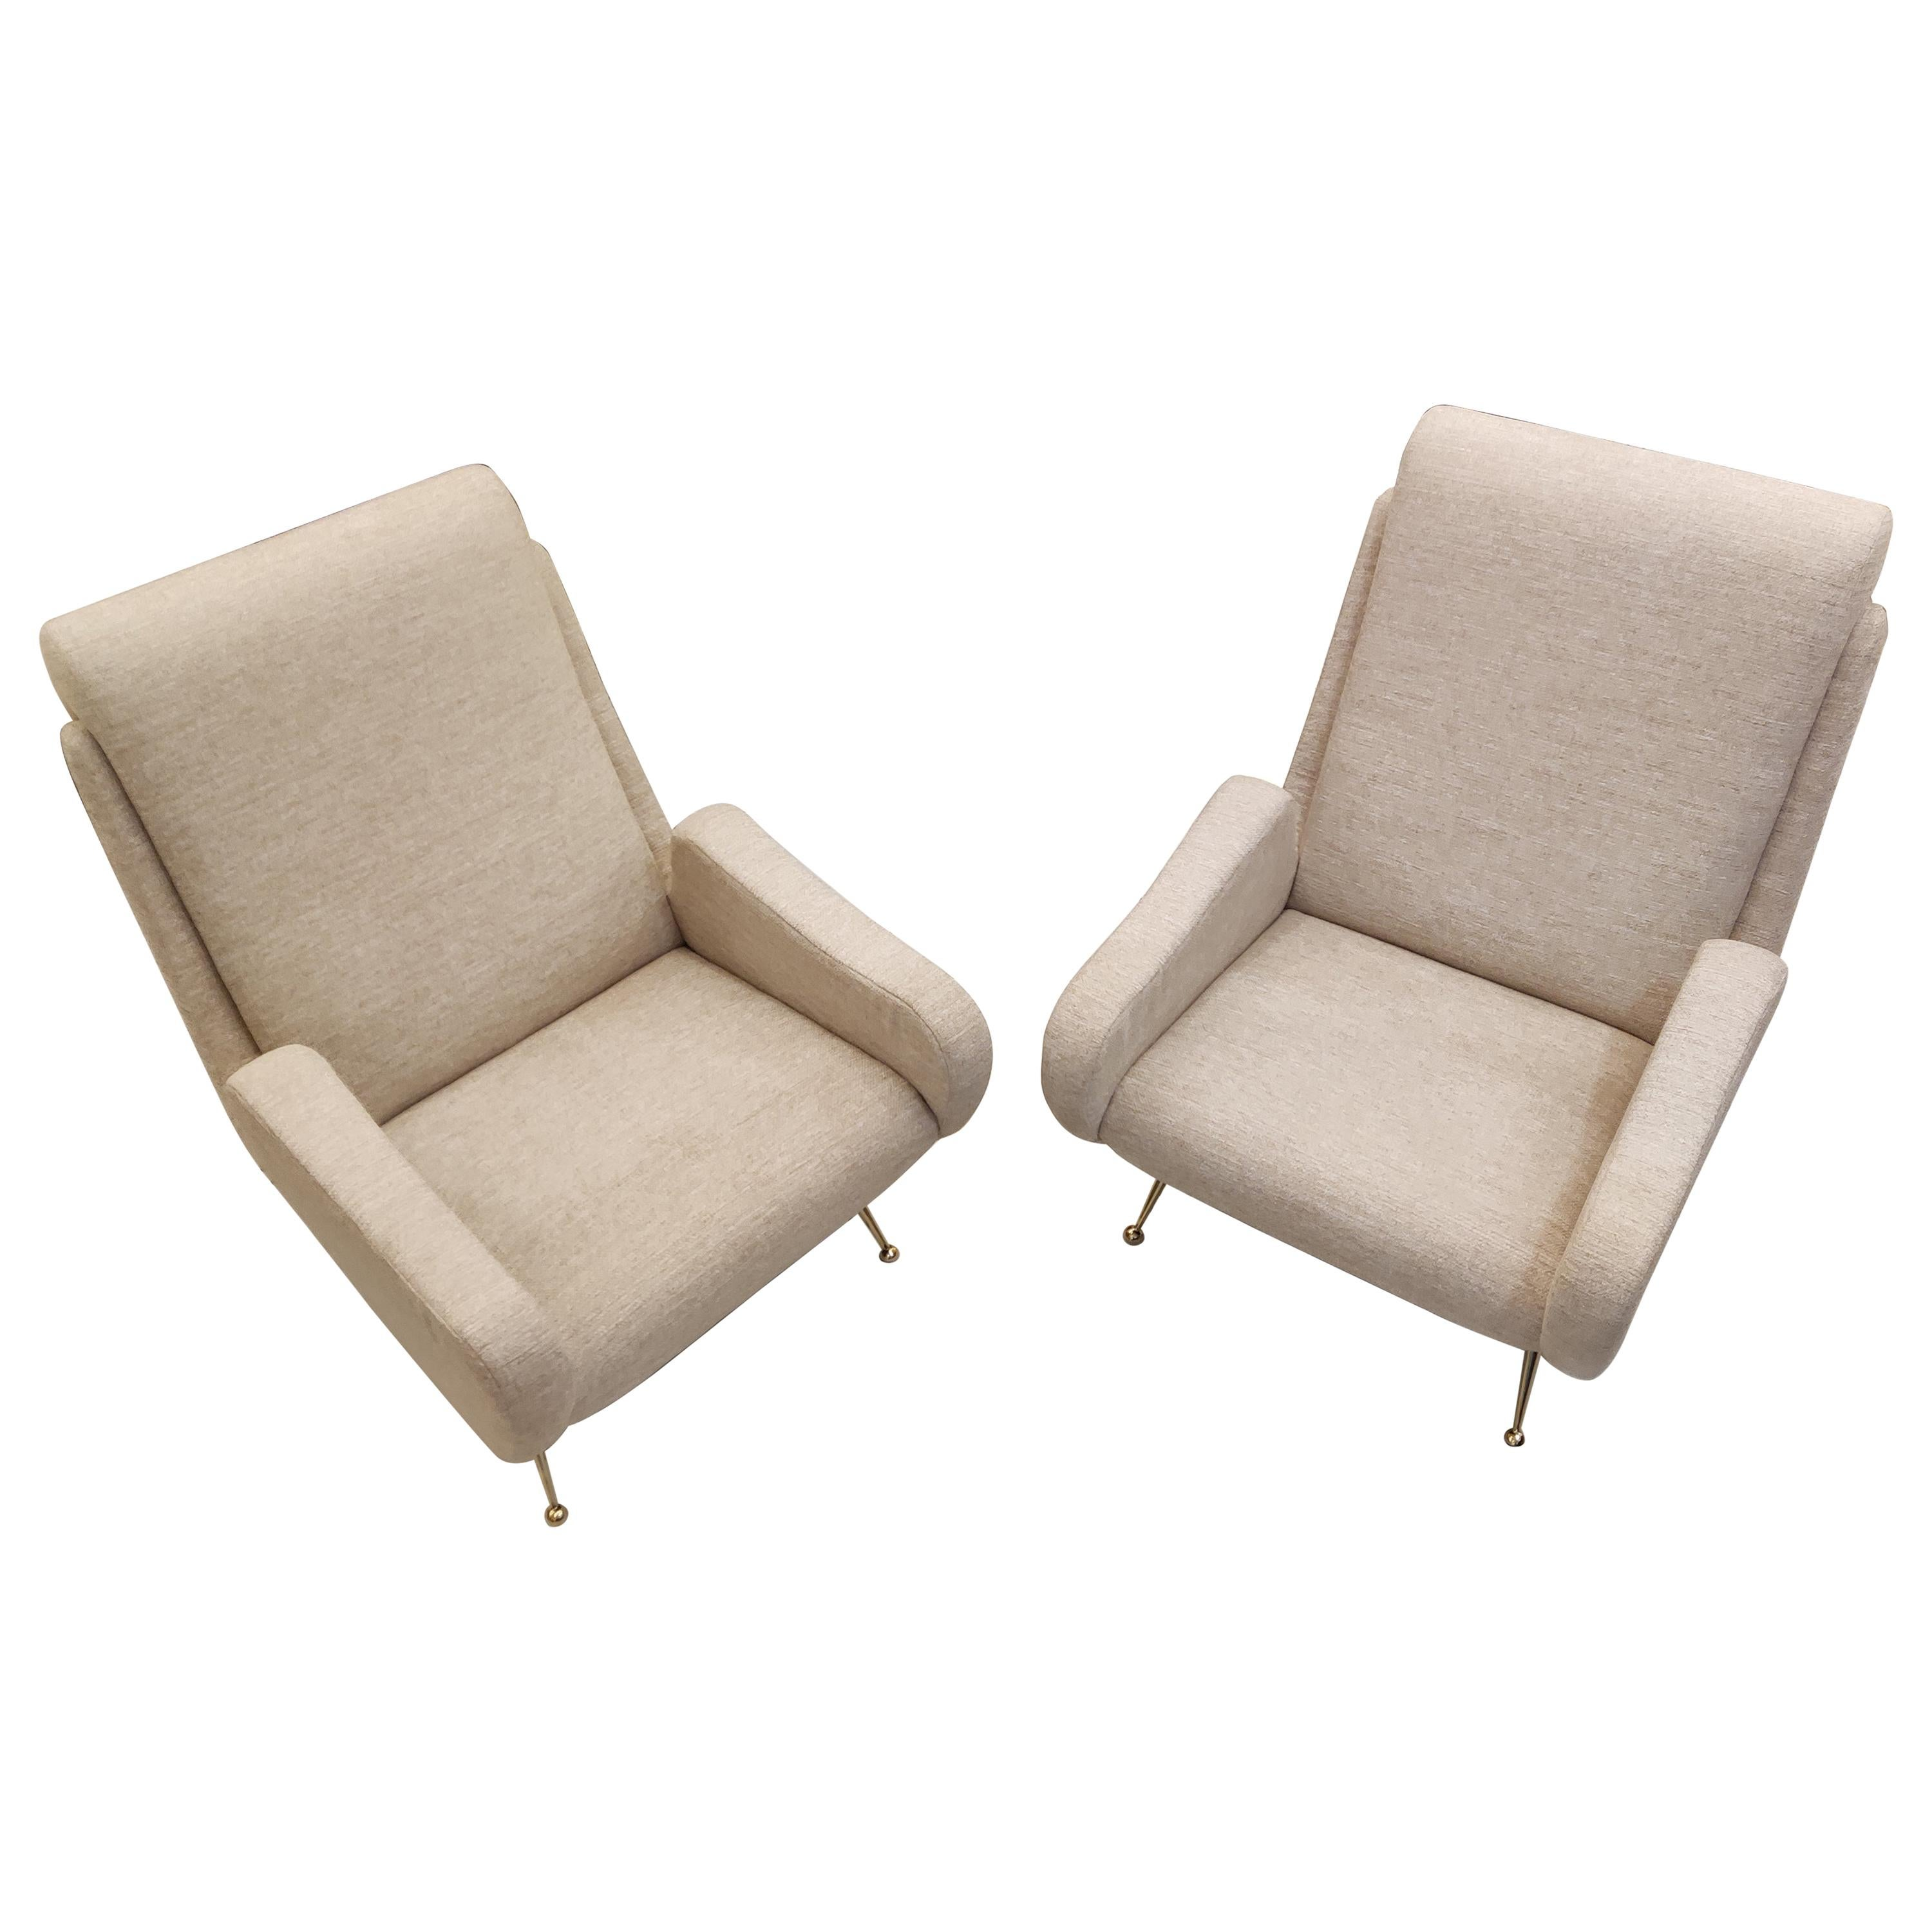 Pair of Italian Armchairs with Brass Feet, Beige Fabric 'Reupholstered'